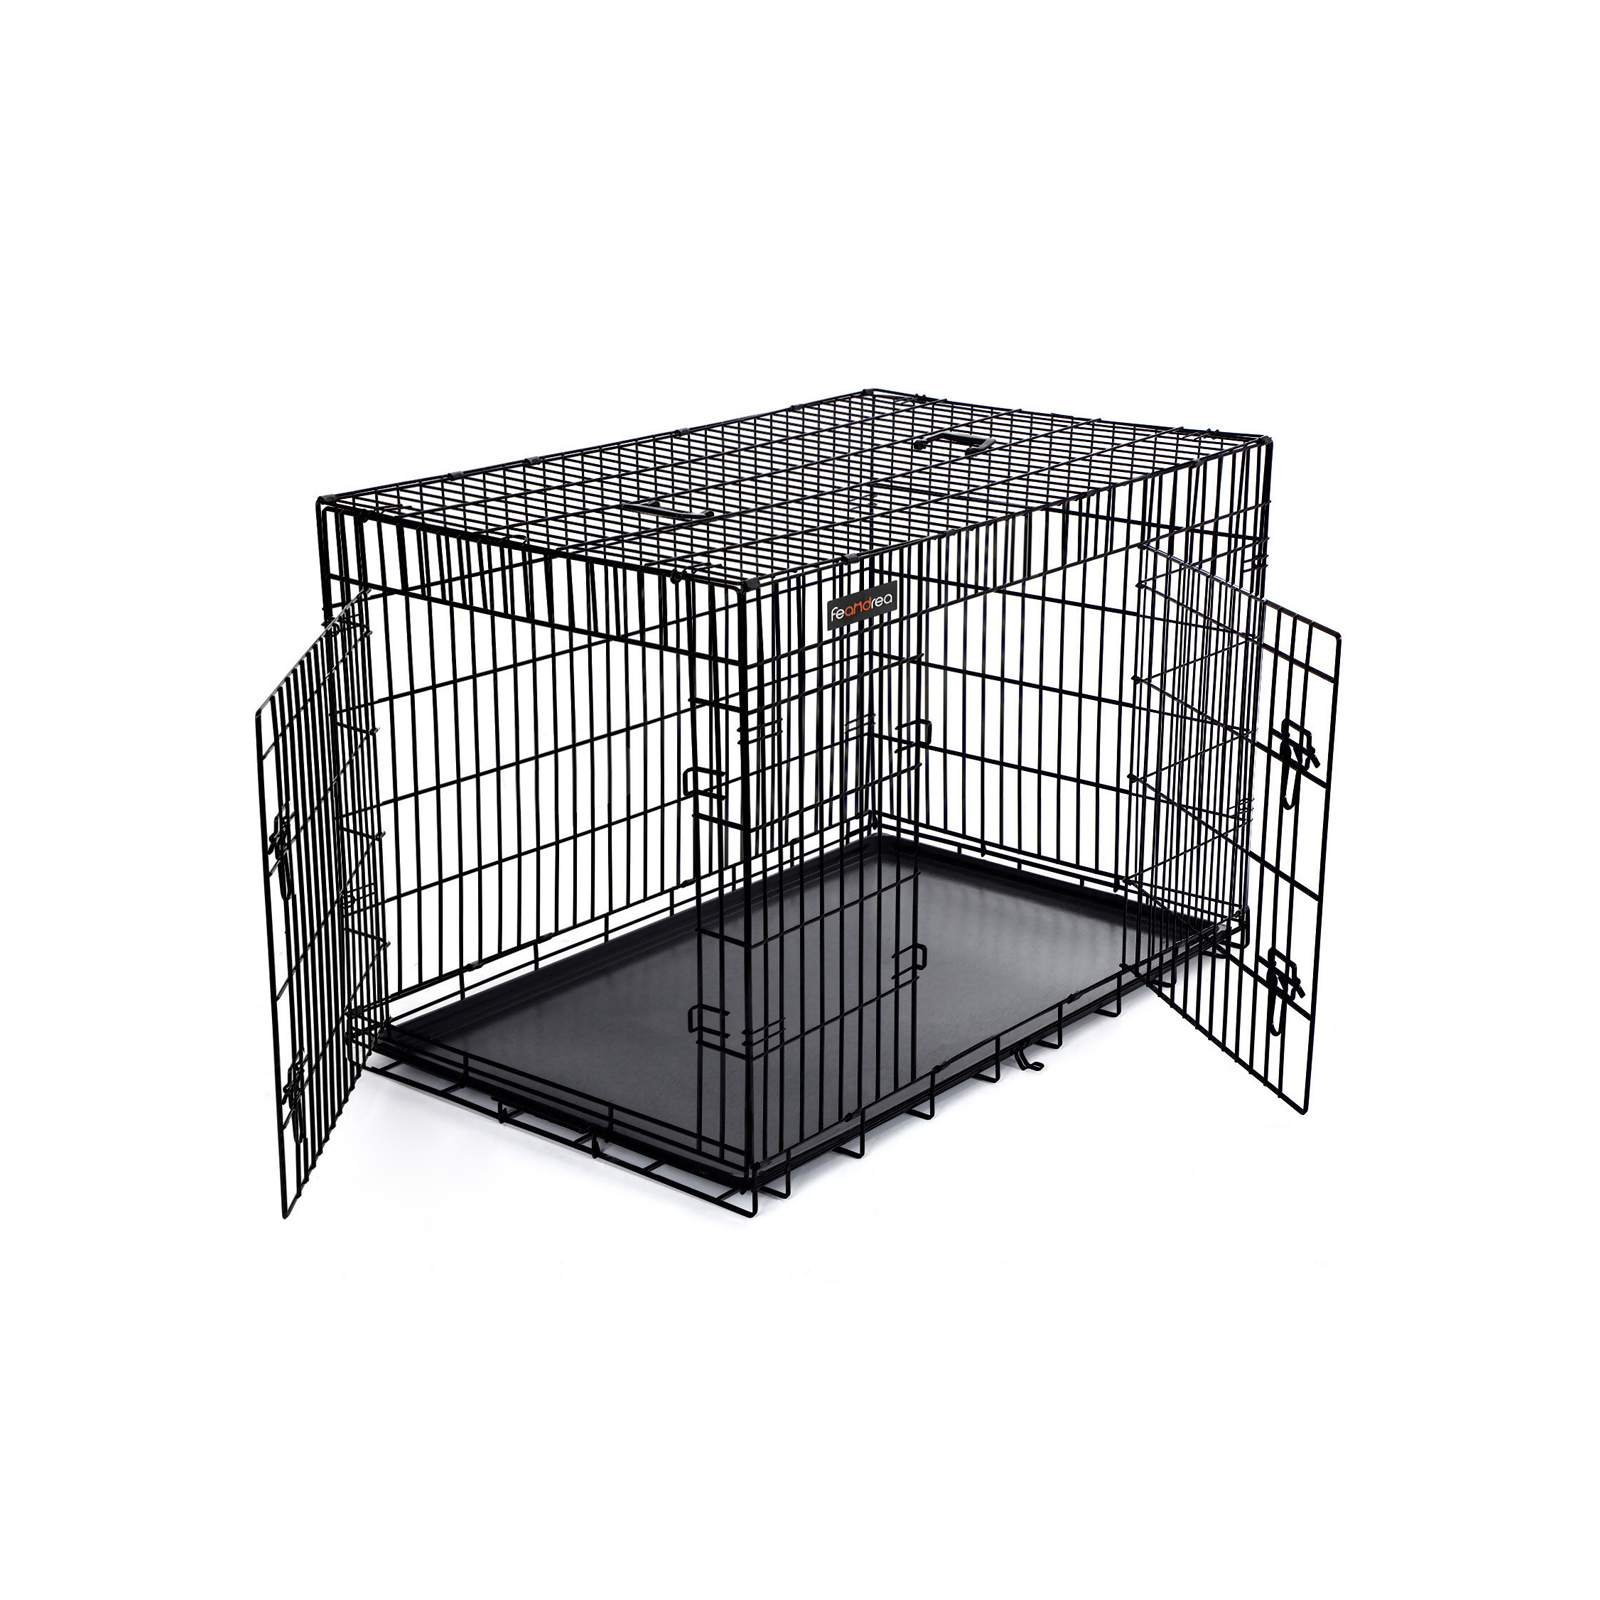 FEANDREA Folding Metal Puppy Cage